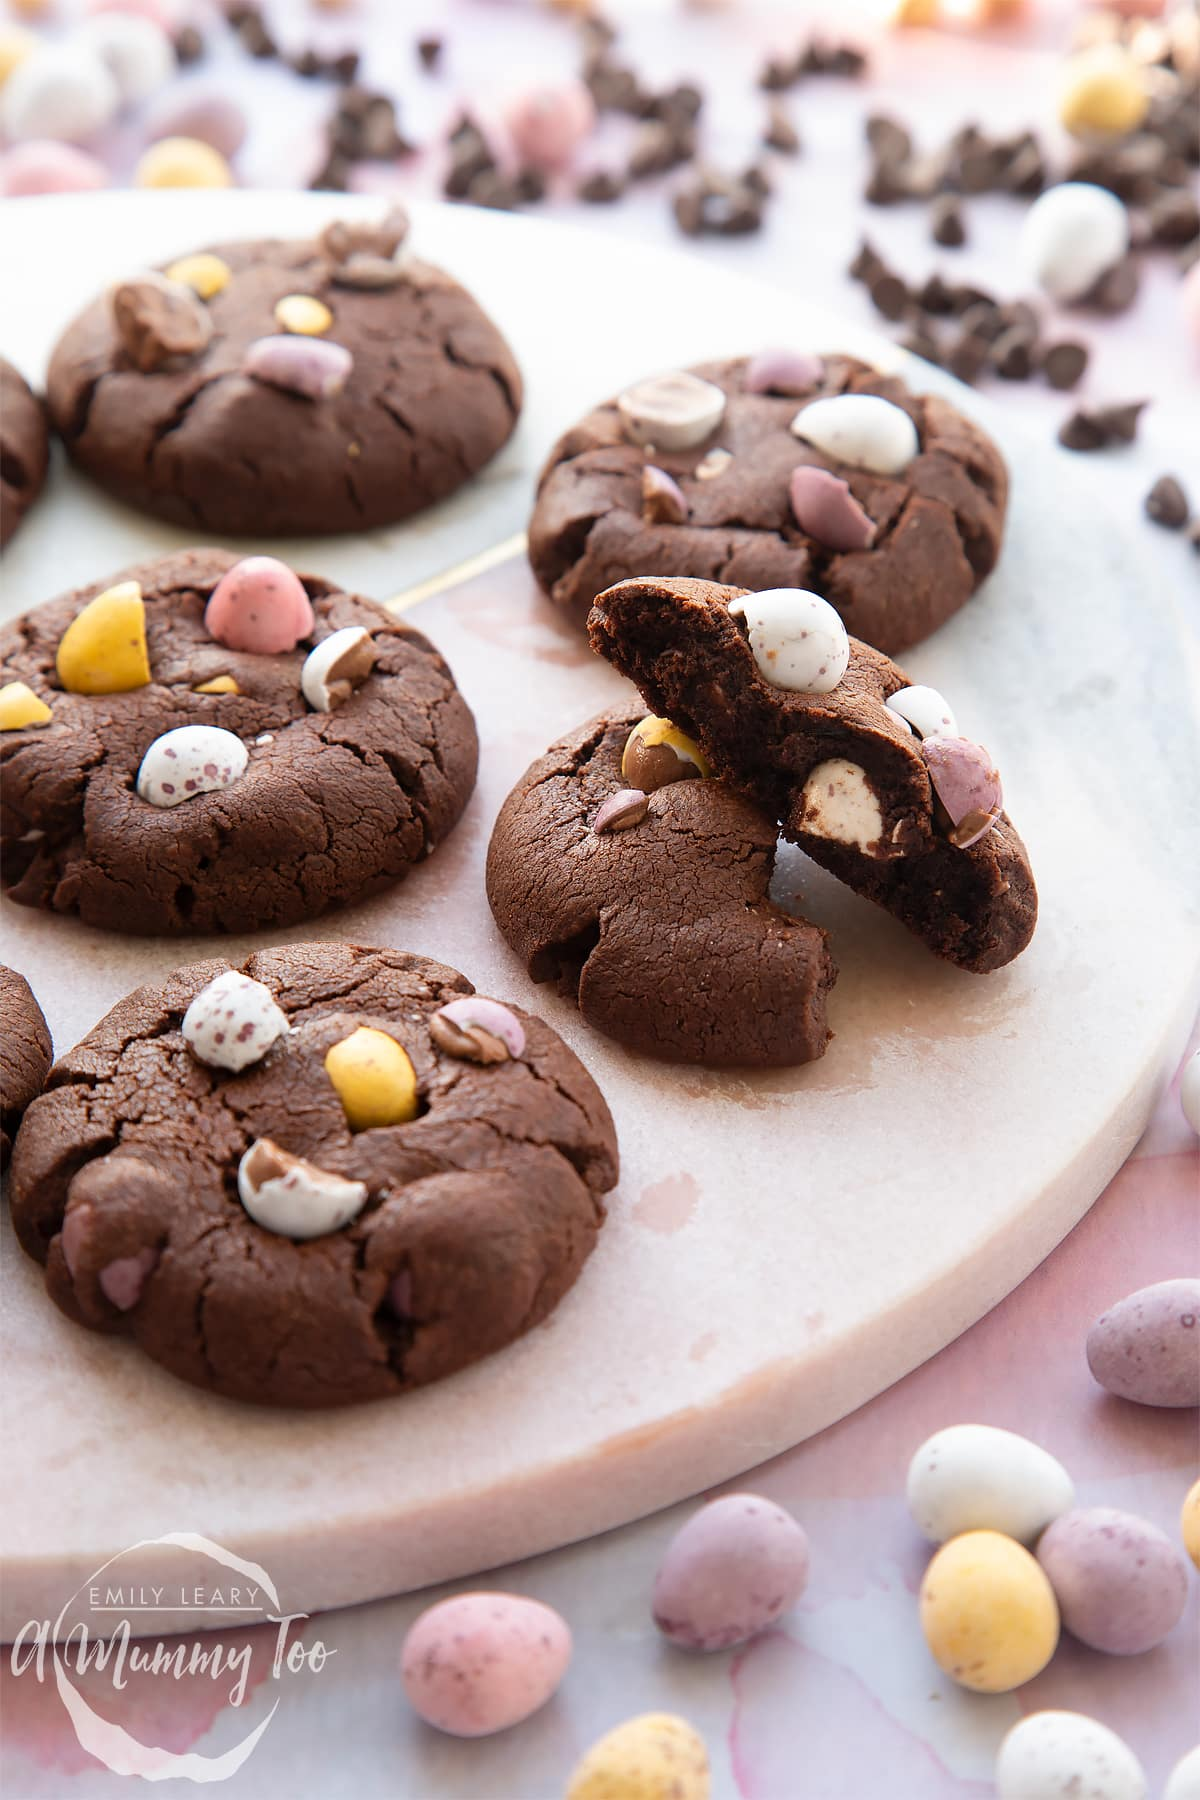 Chocolate Easter cookies arranged on a round marble board. The board is surrounded by Mini Eggs.